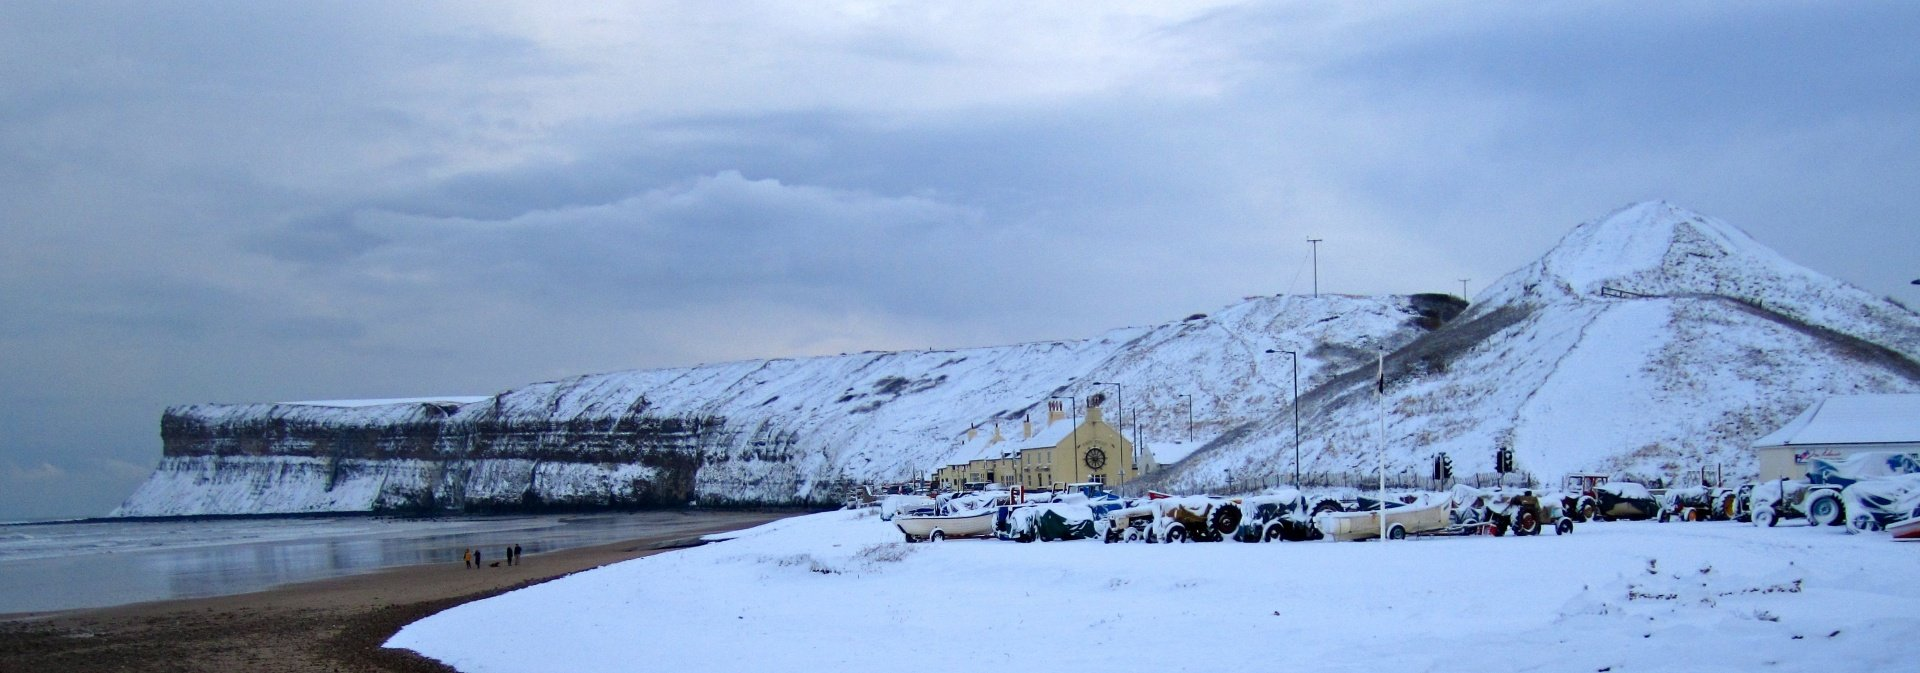 Frosty's photo of Saltburn Beach